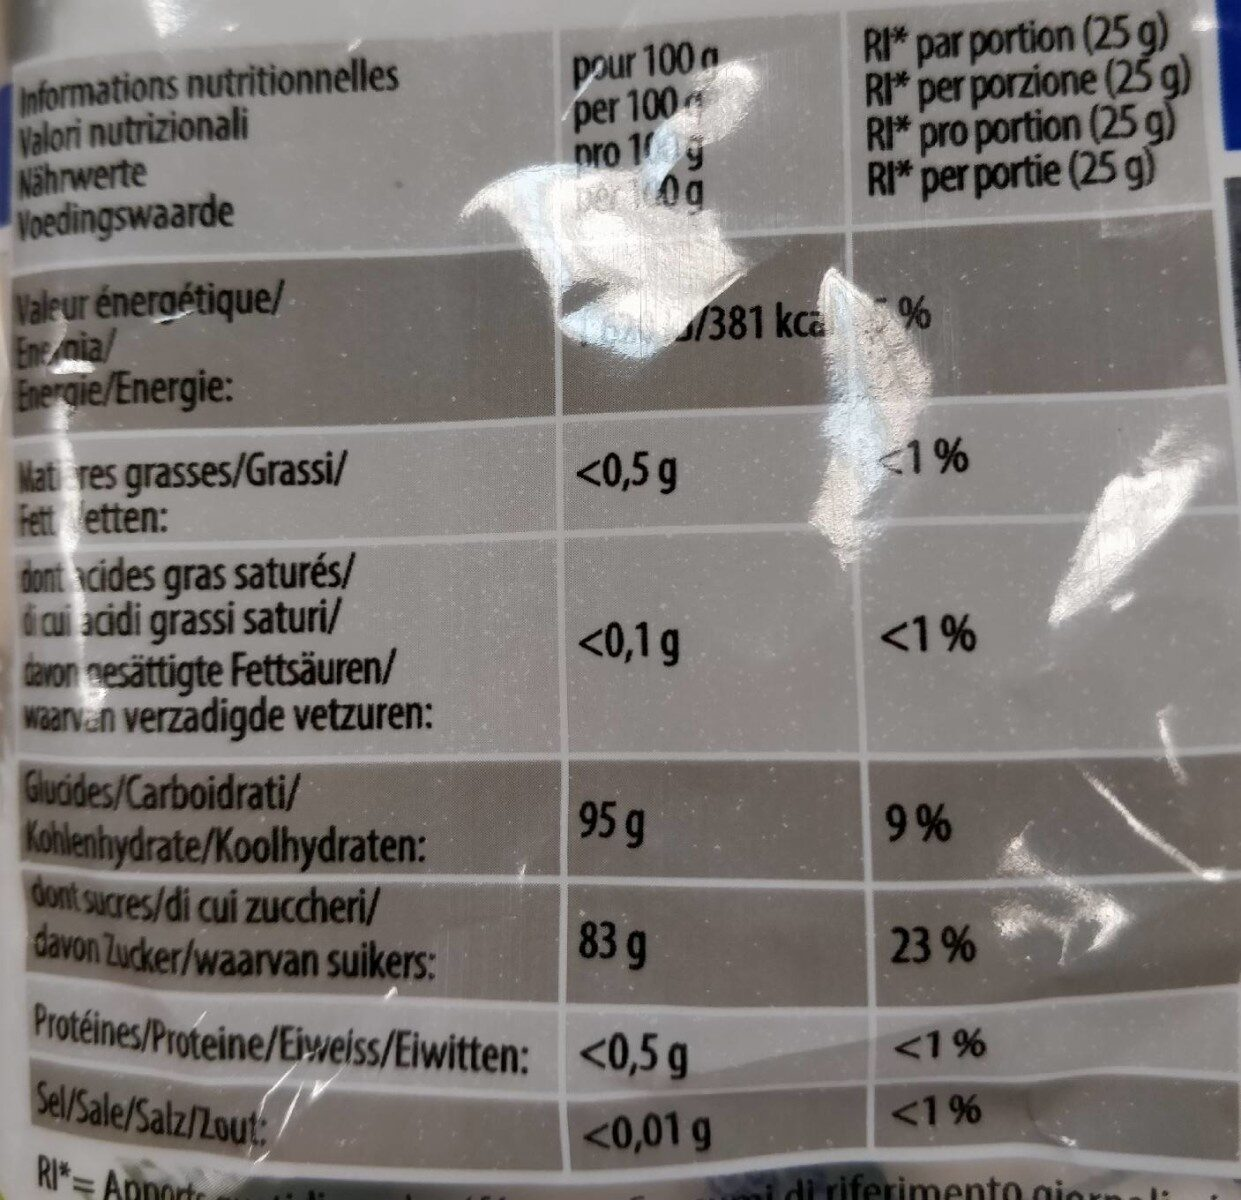 Starmint 200g - Nutrition facts - fr